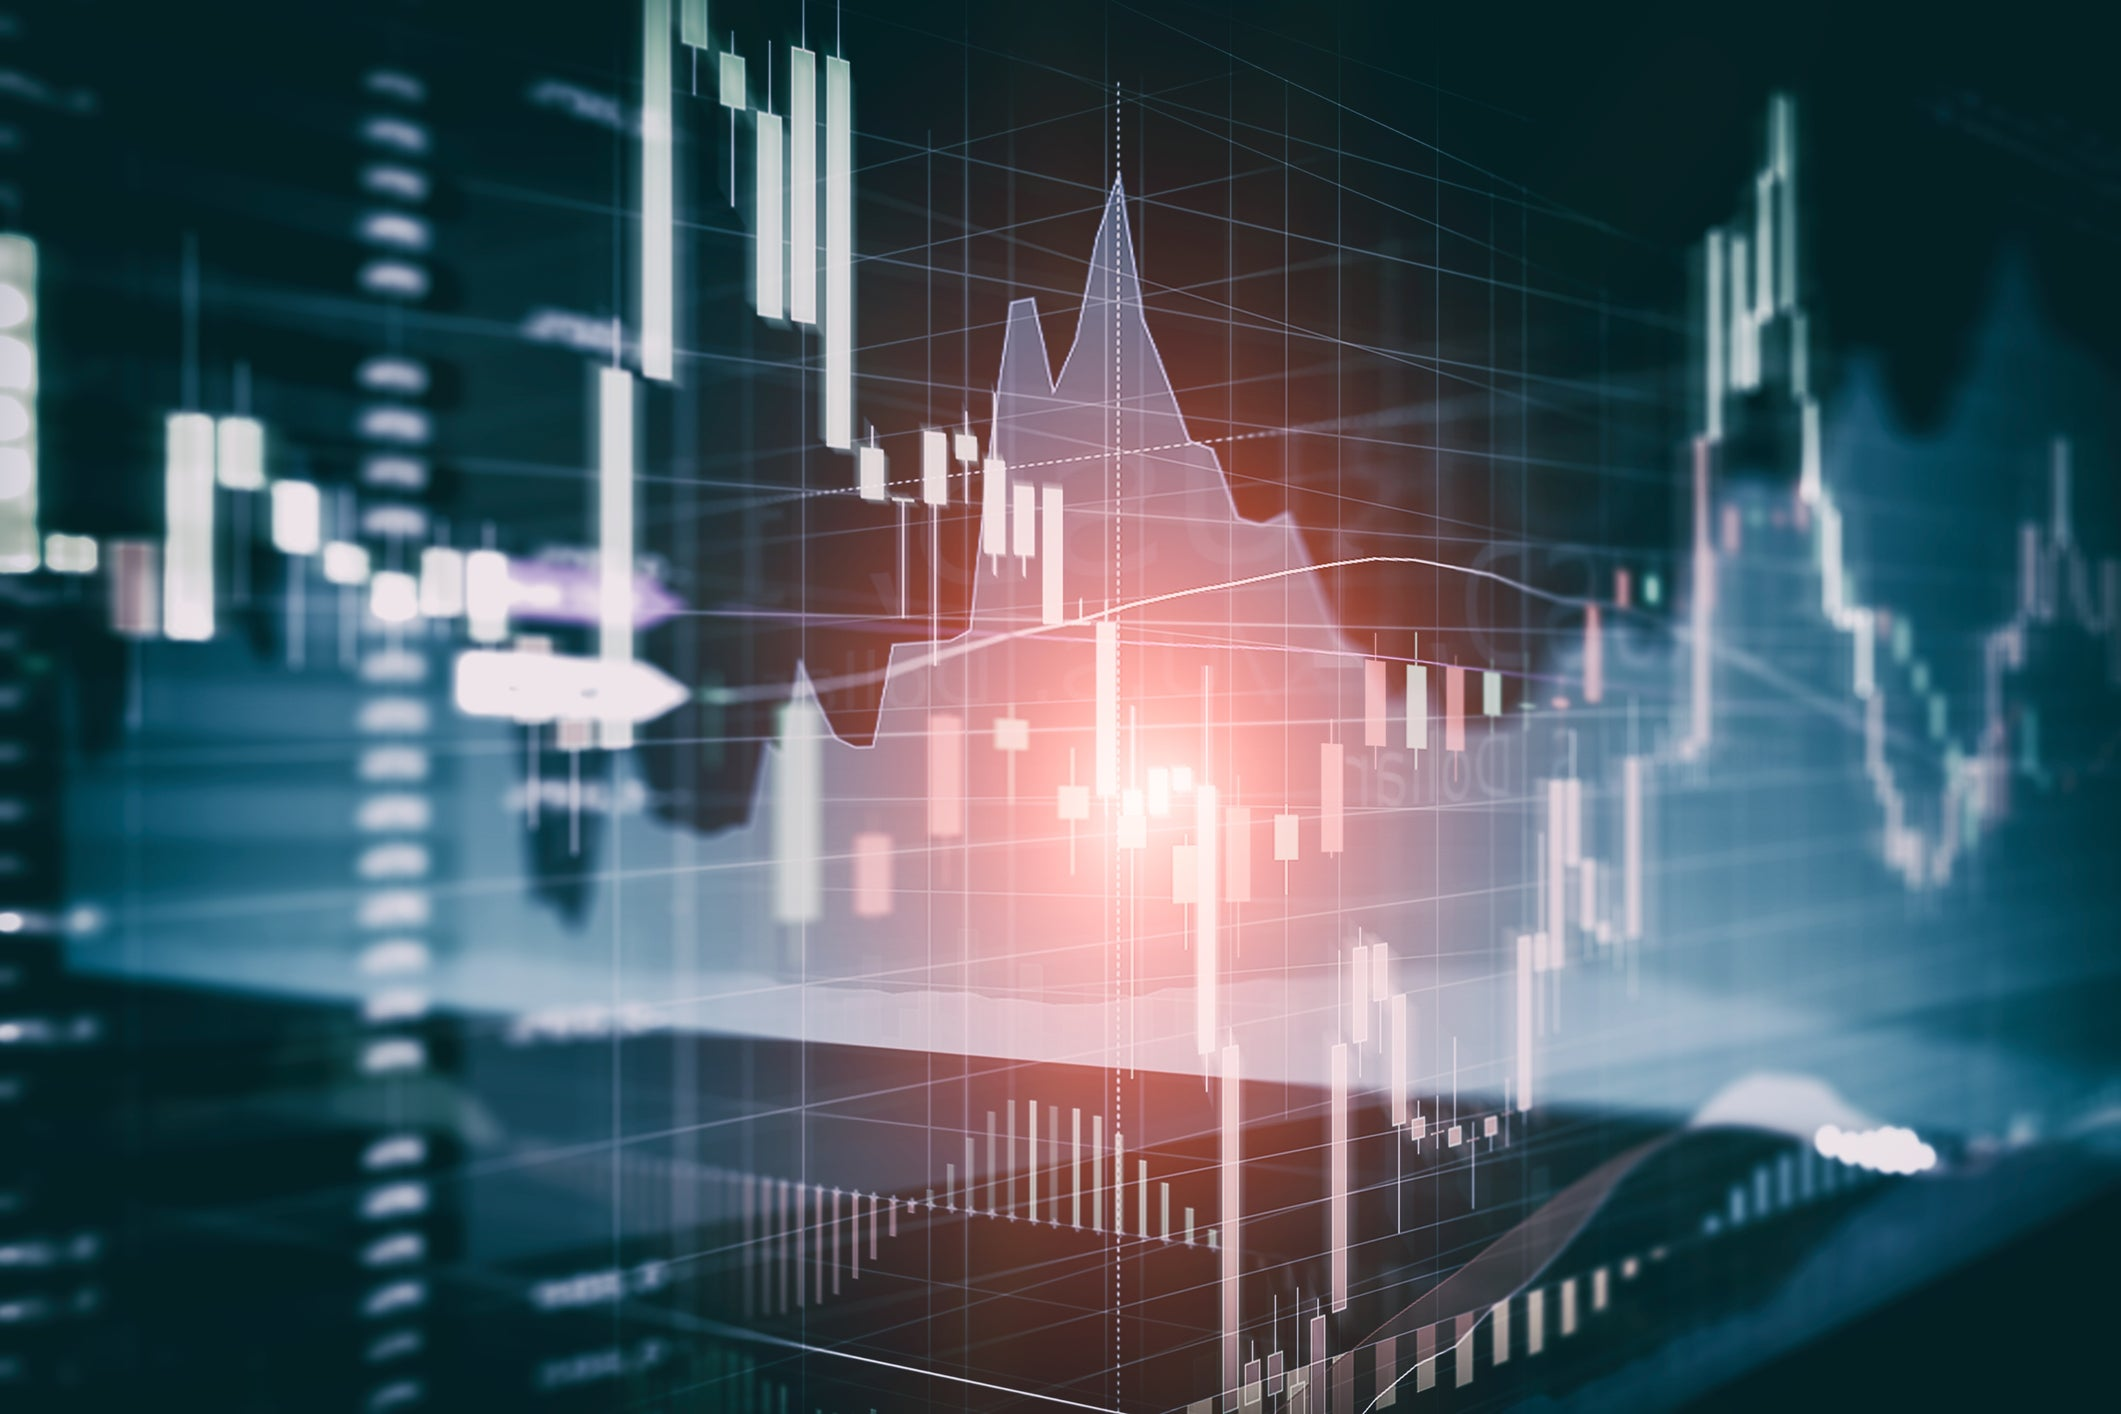 The Vanguard Total Bond Market Index Fund Can Take The Guesswork Out